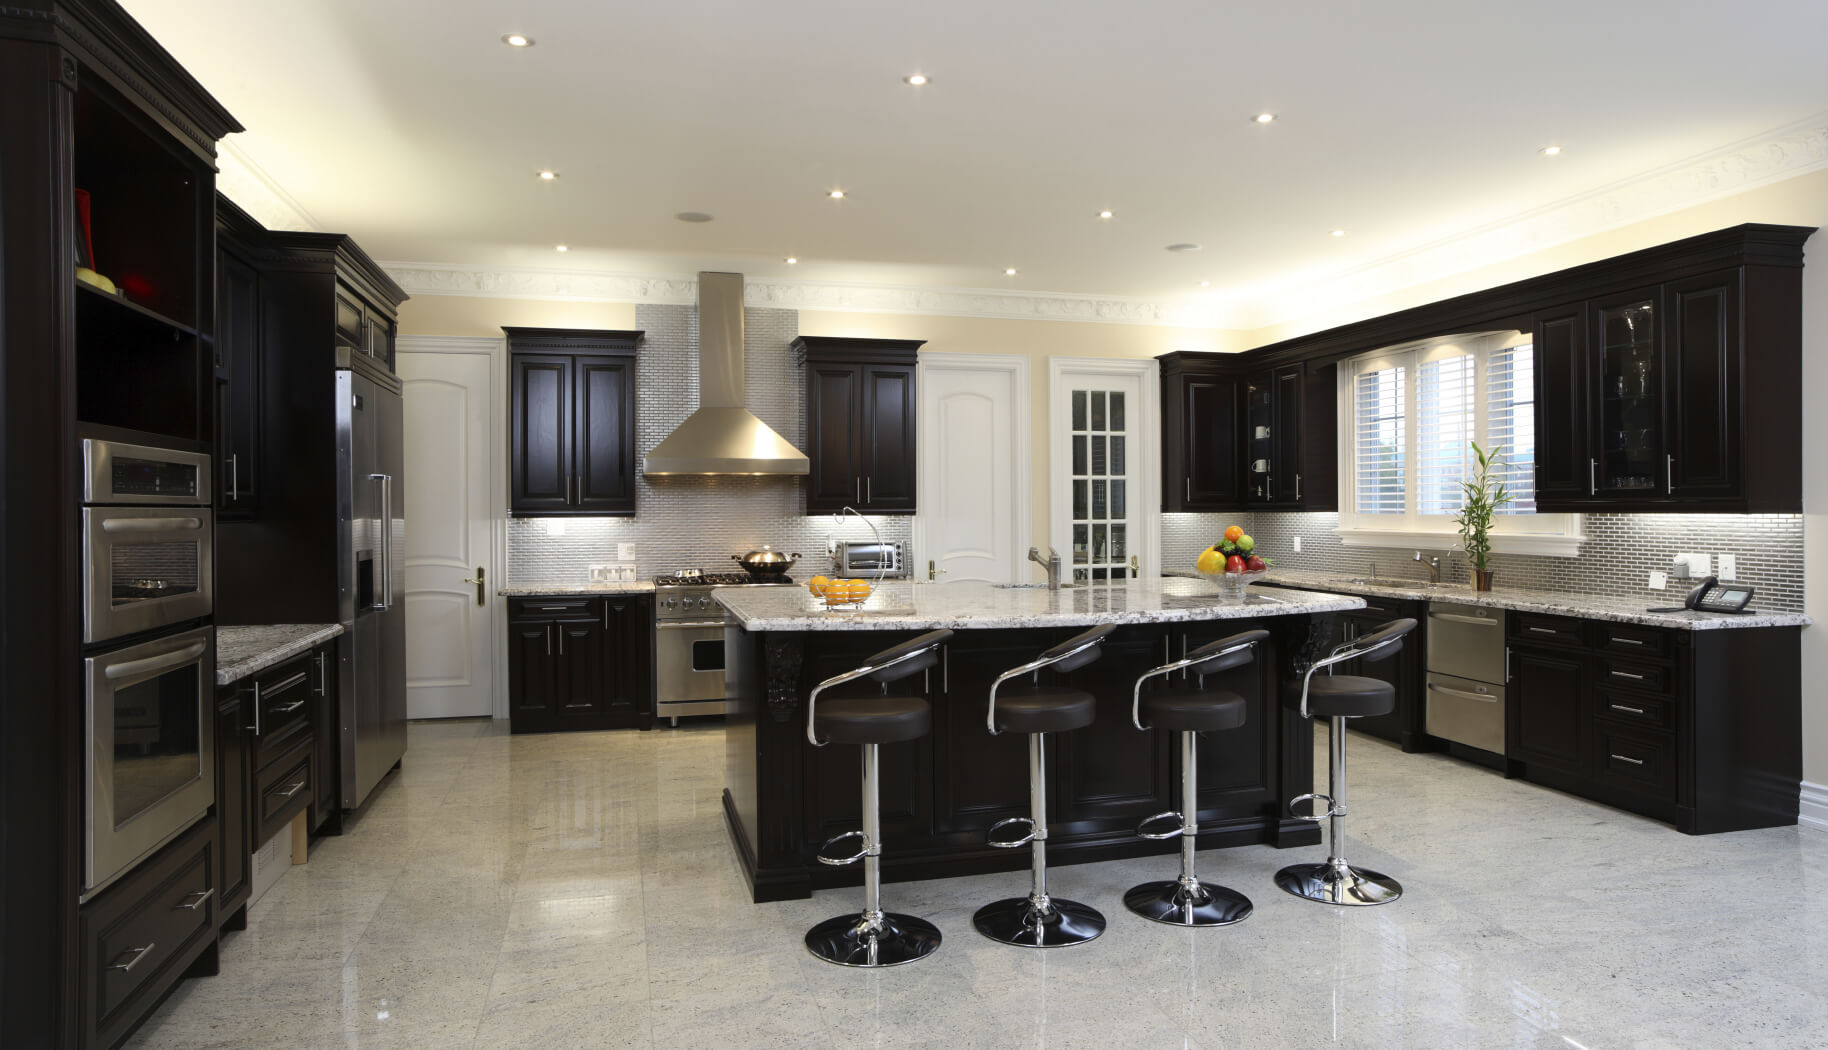 Super 52 Dark Kitchens With Dark Wood And Black Kitchen Cabinets Largest Home Design Picture Inspirations Pitcheantrous